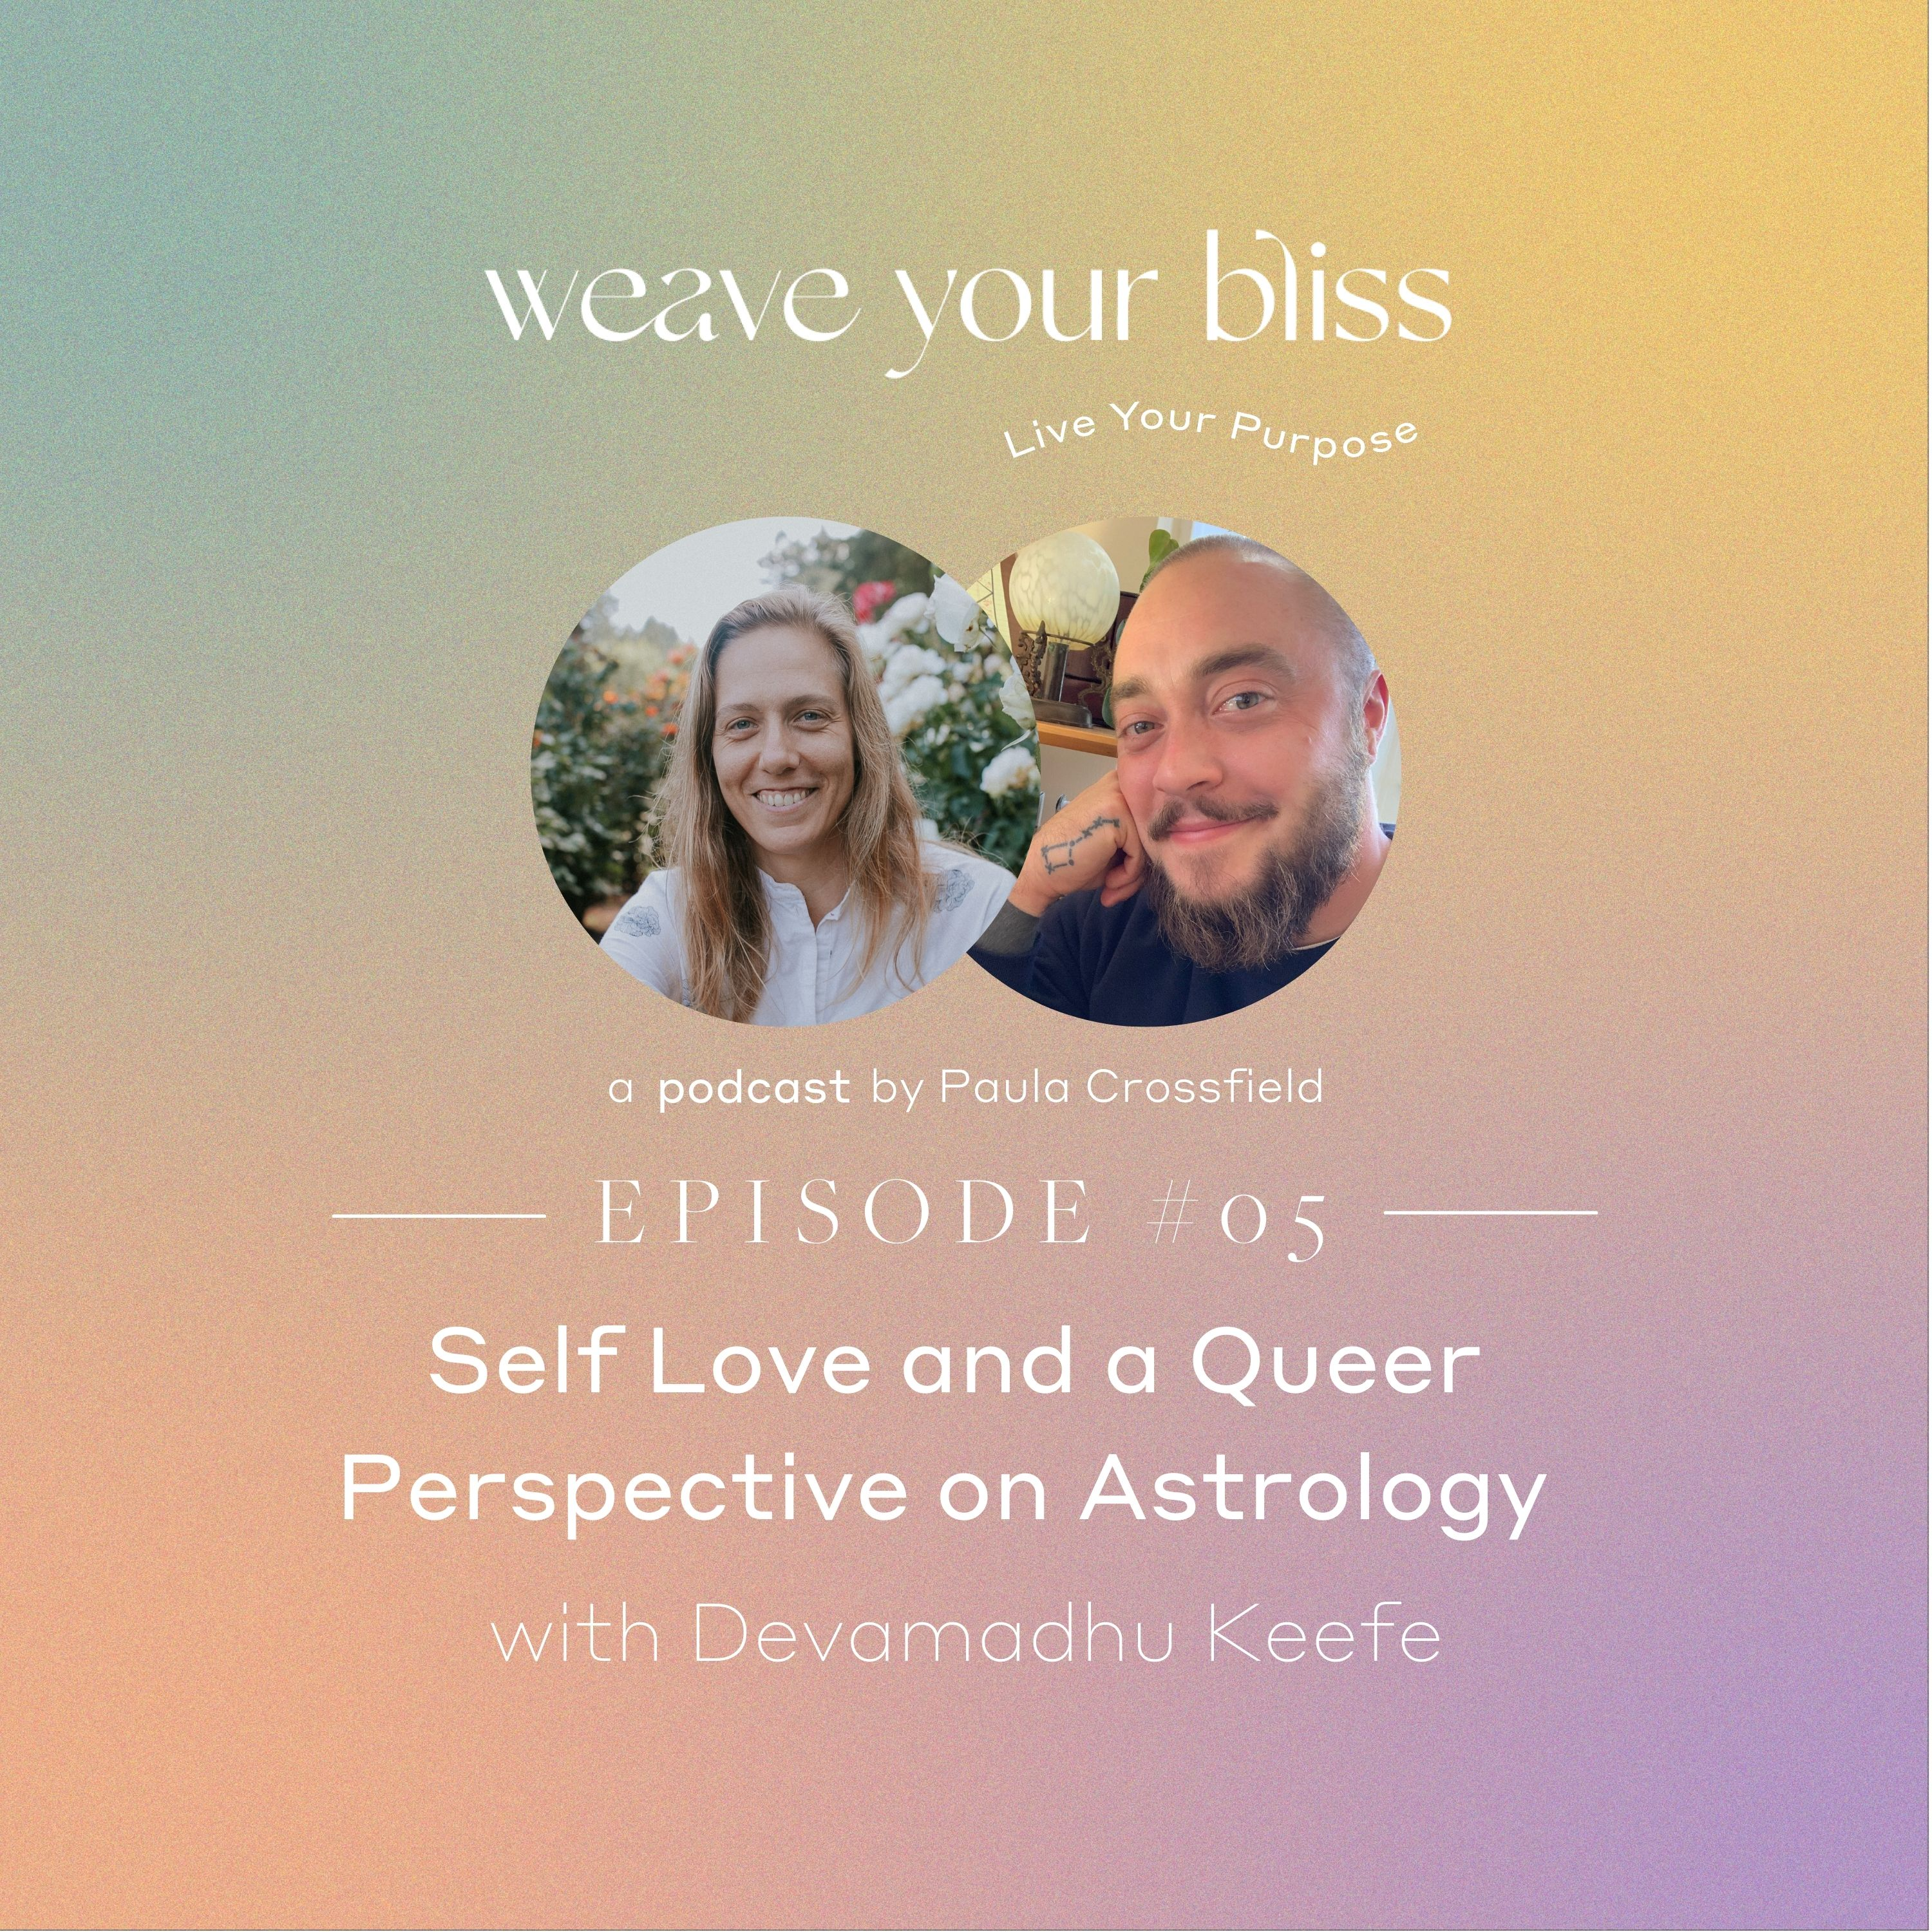 05: Self Love and a Queer Perspective on Astrology with Devamadhu Keefe